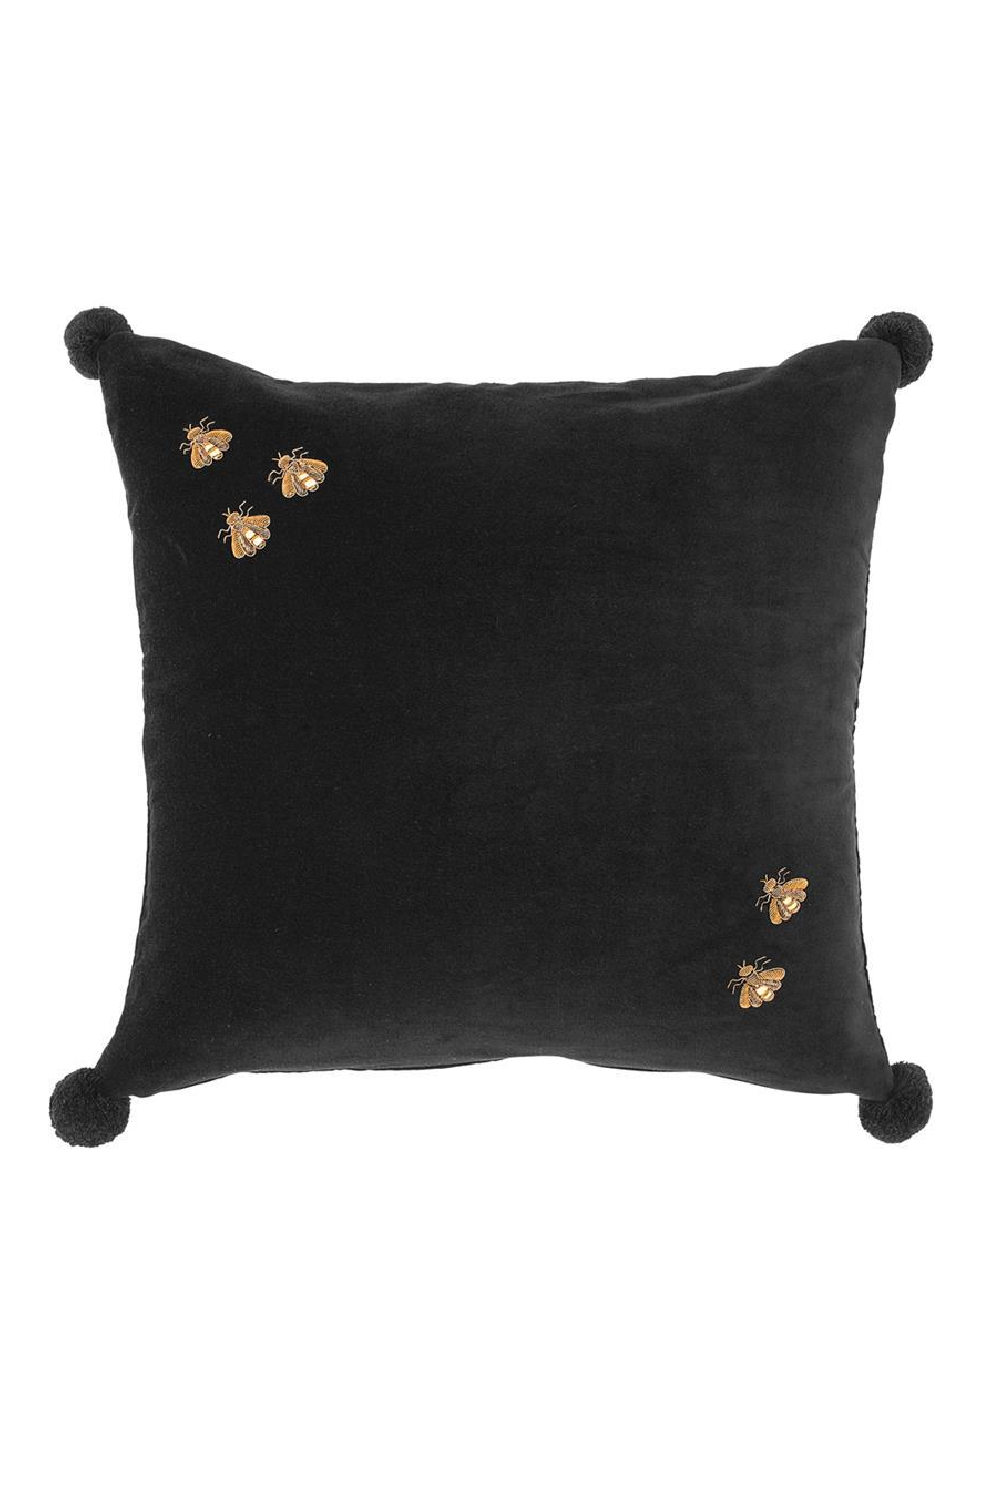 Golden Bees Pillow | Eichholtz Salgado | OROA Modern Decor